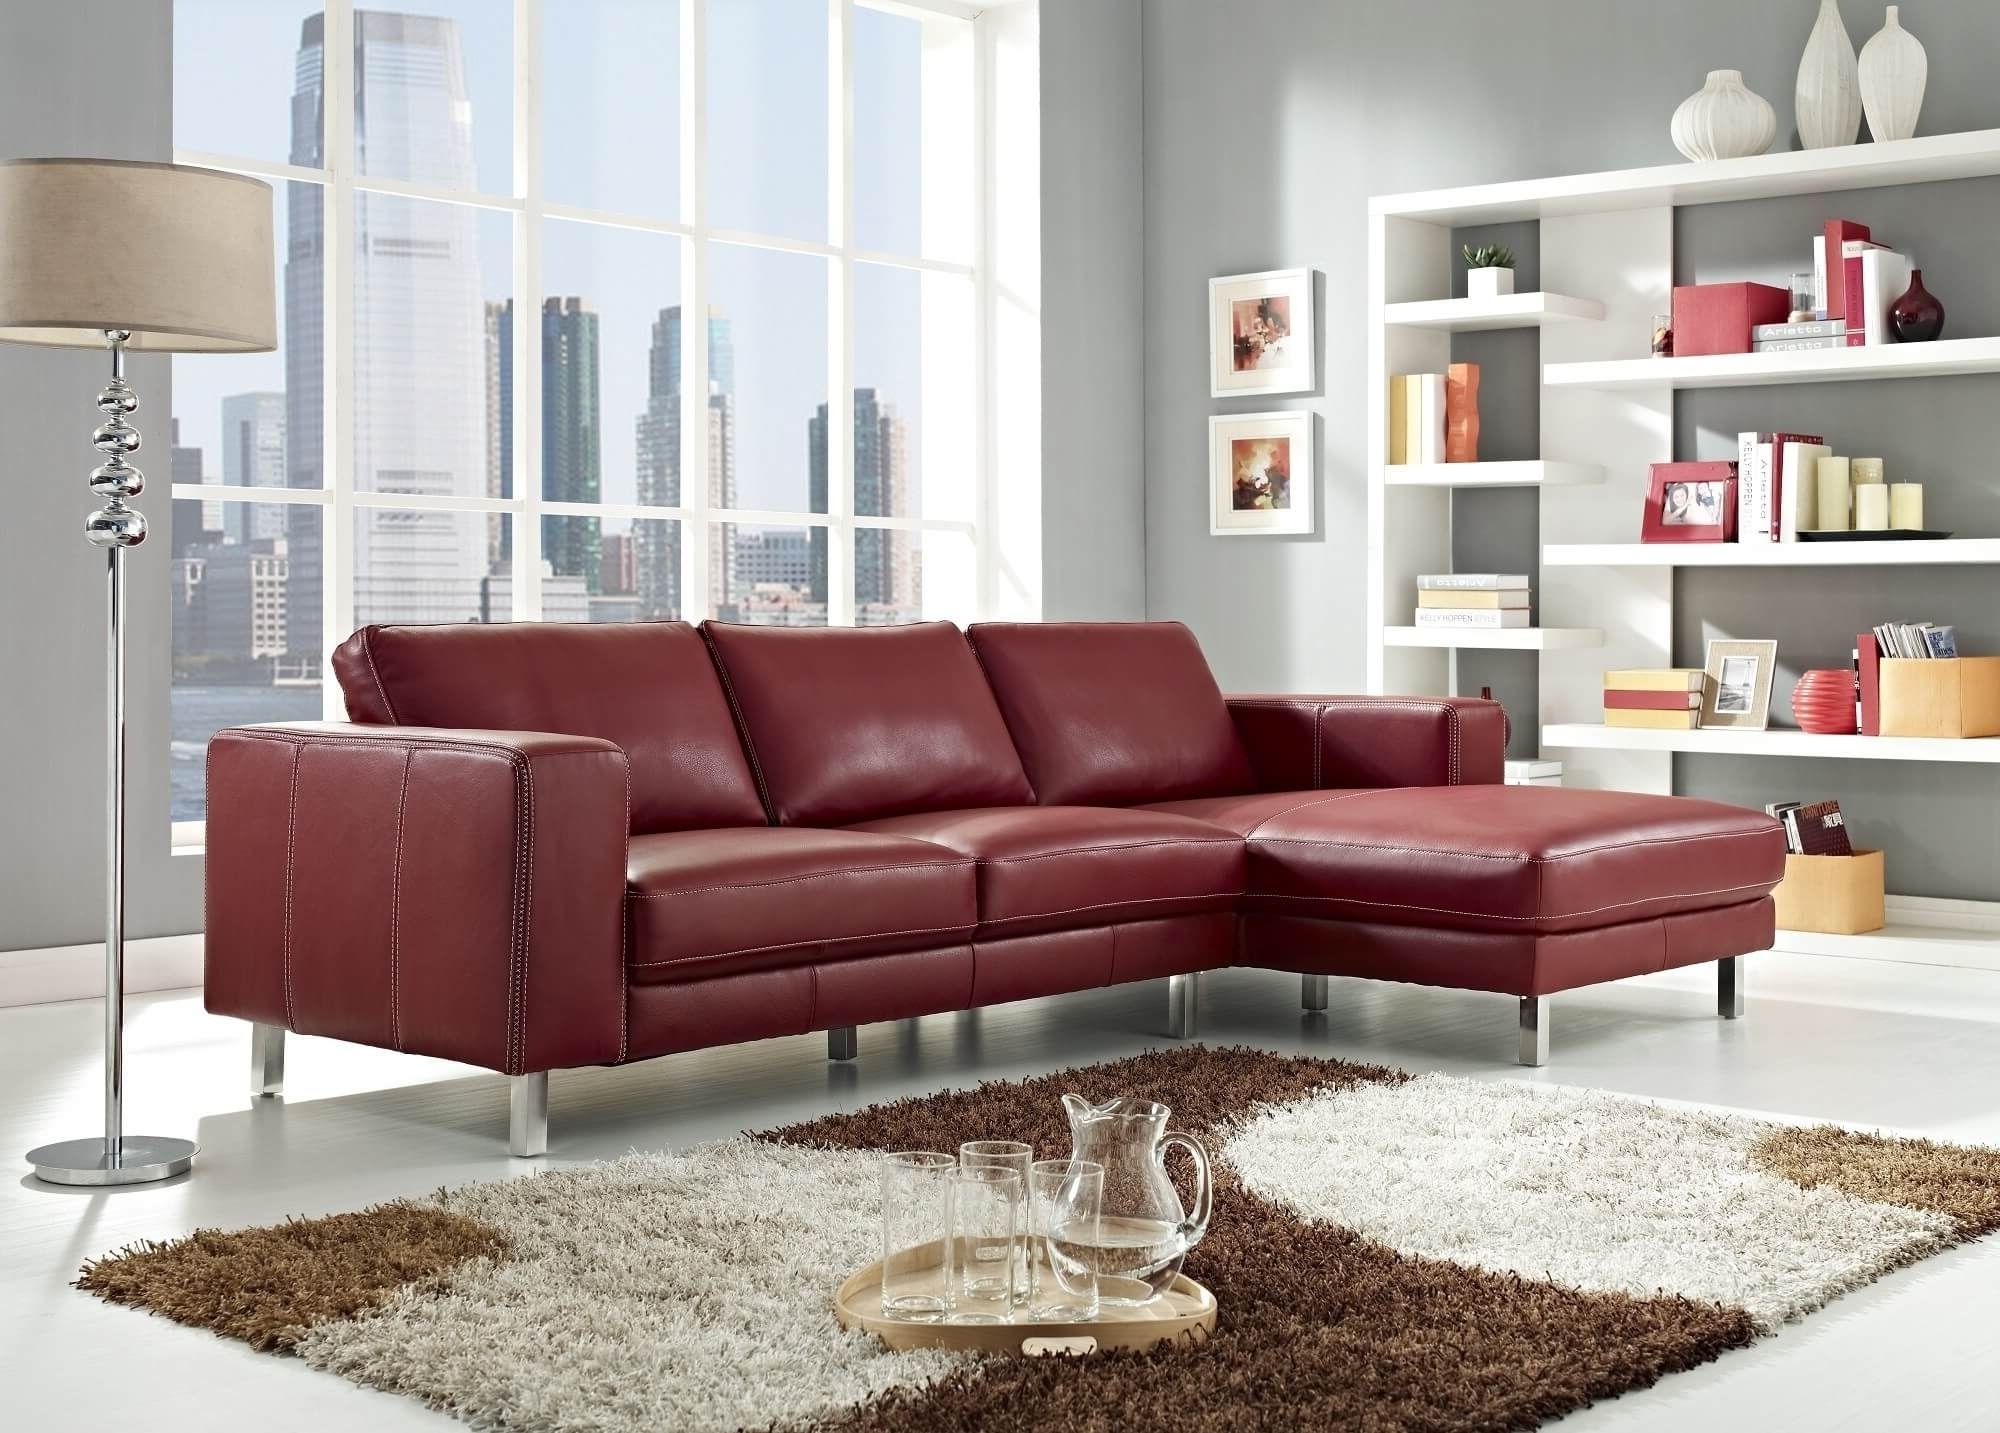 Small Red Leather Sectional Sofas Throughout Most Up To Date Stylish Modern Red Sectional Sofas (View 17 of 20)